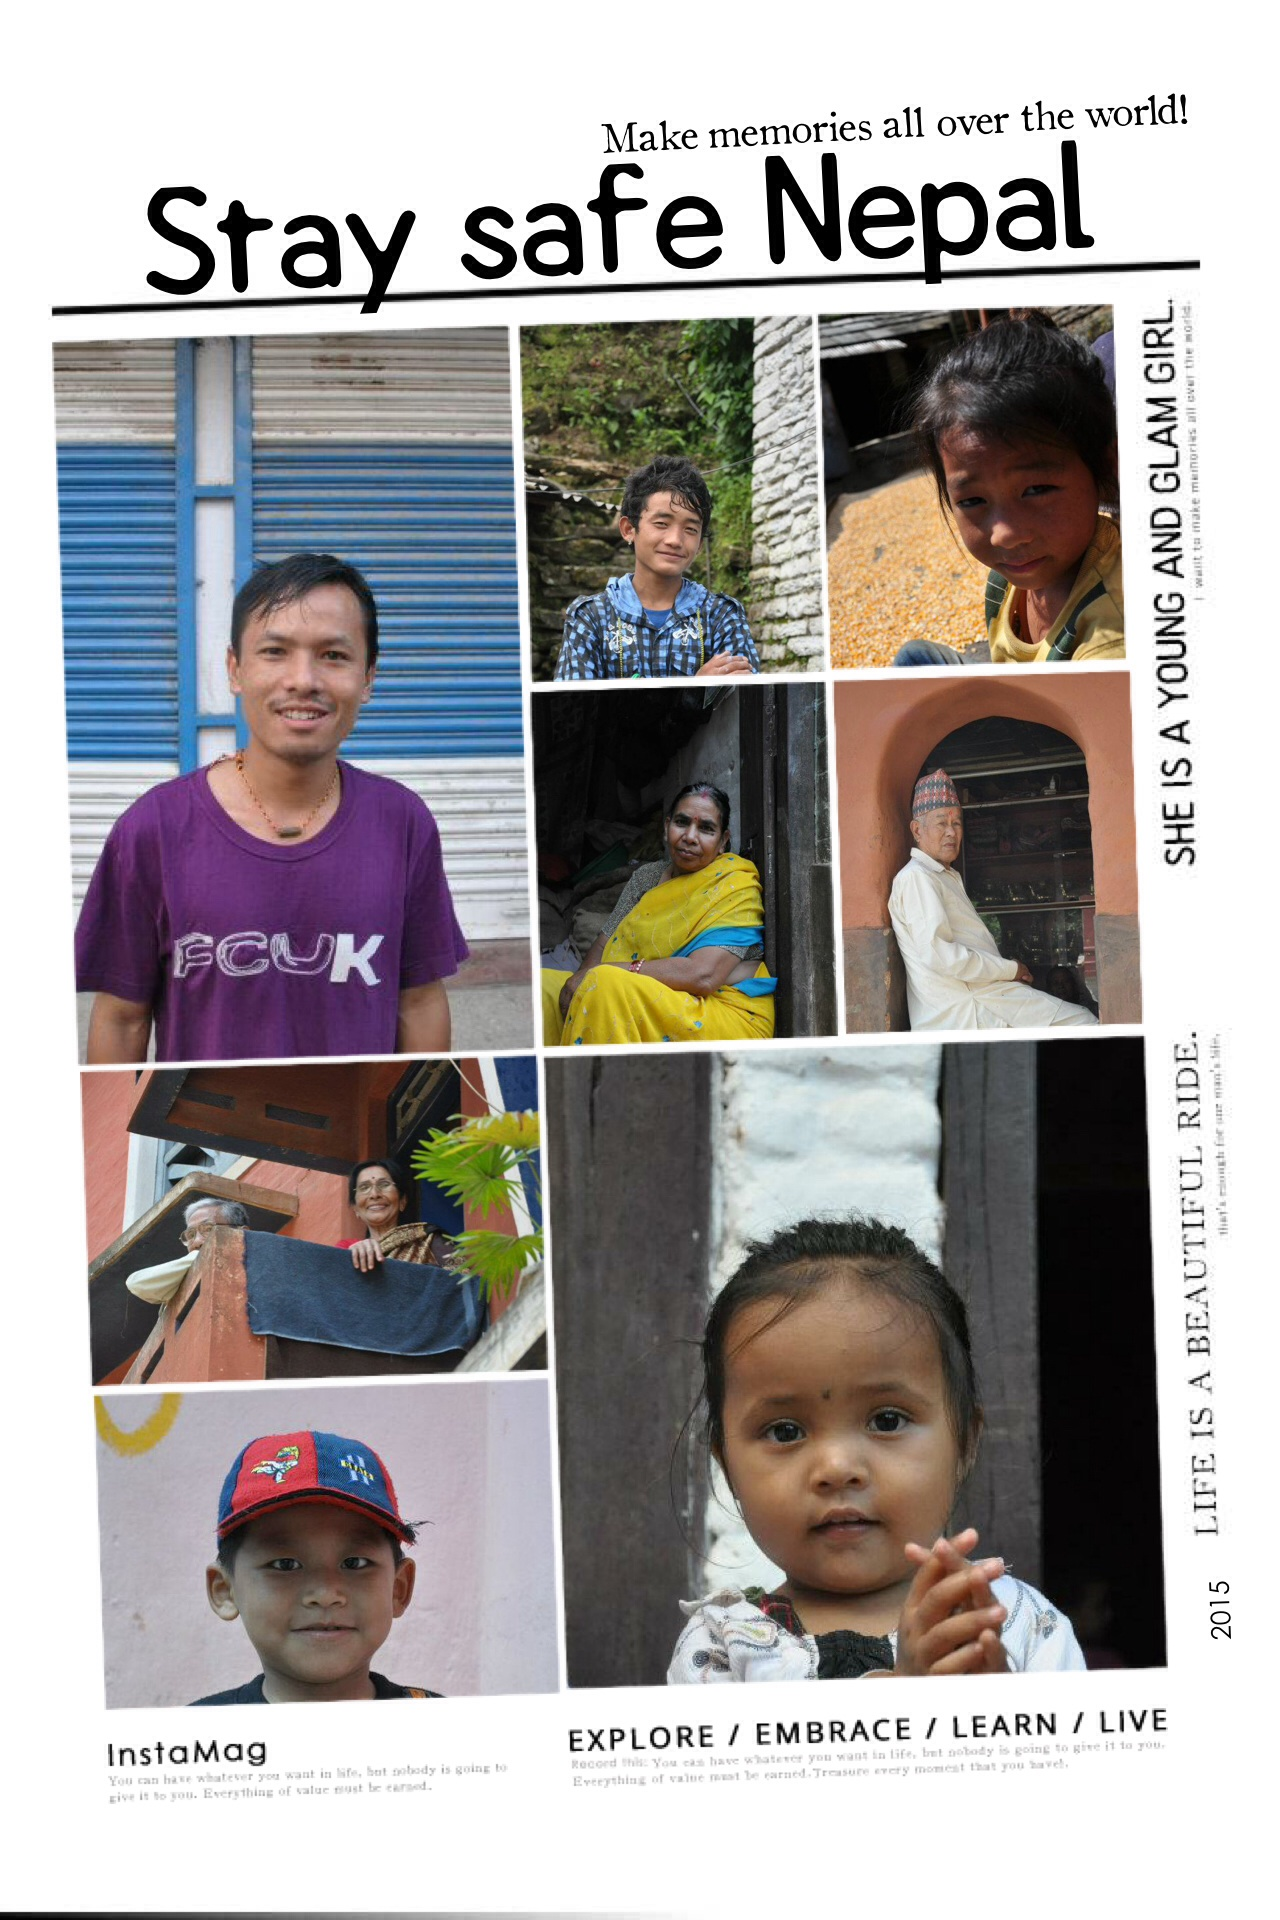 Surya Lama, marked safe. Locals we met during the trip, I hope that you're safe and sound.